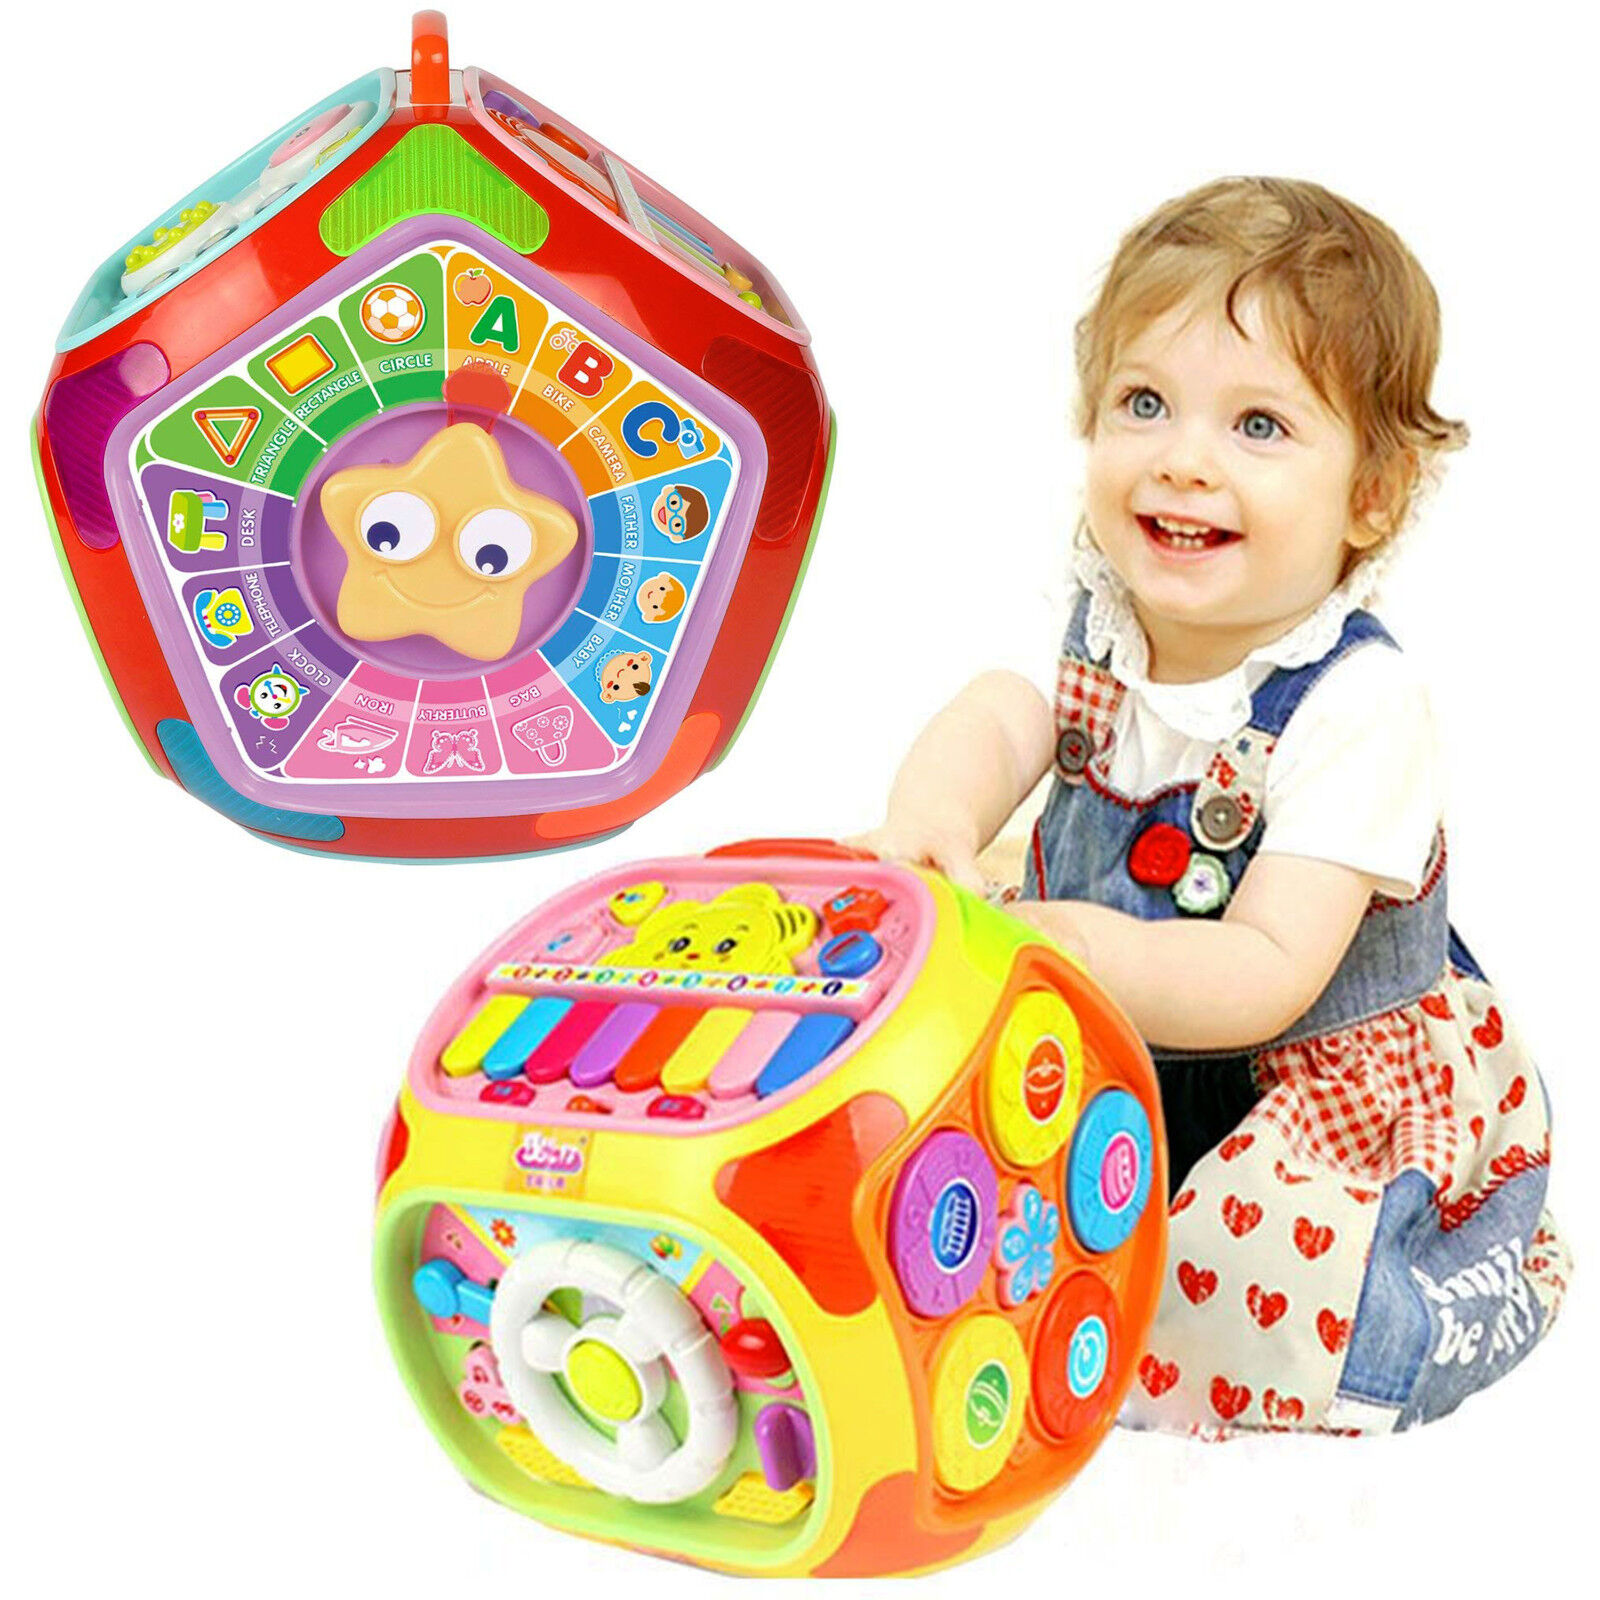 Baby Toddler Multifunctional Learning House Activity Play Cube Center Music Toy